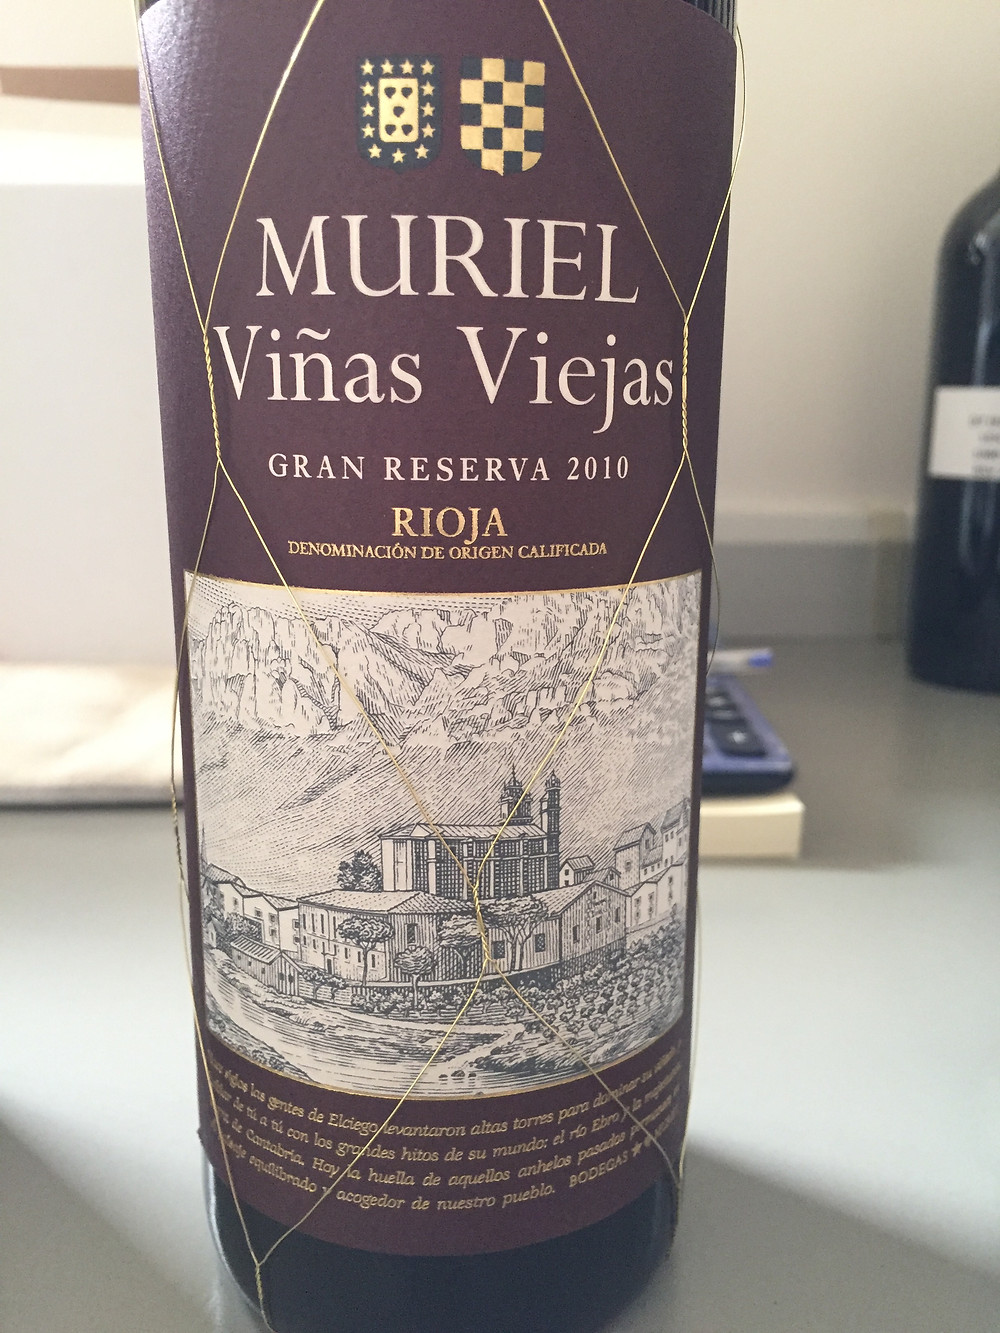 Estate grown wine from Bodegas Muriel